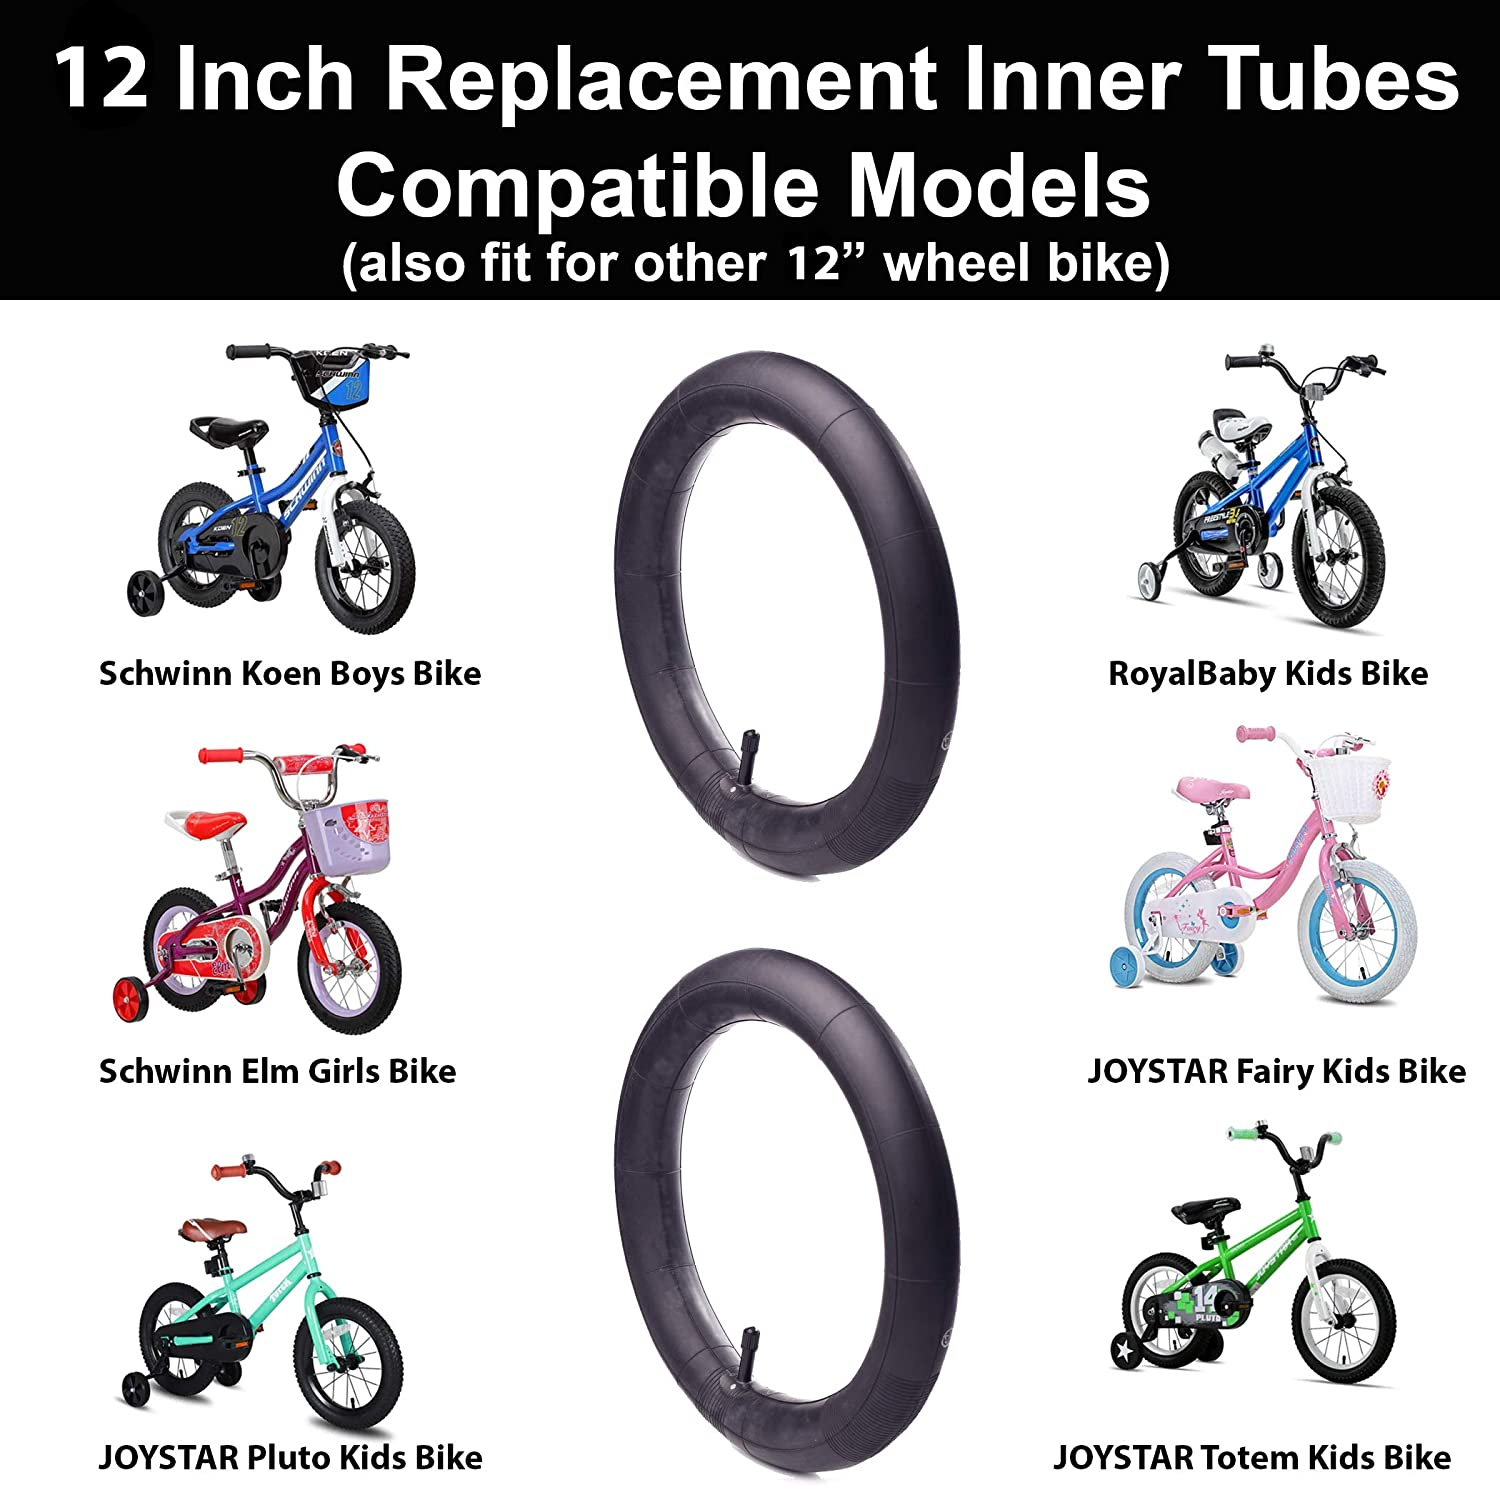 2 Pack 20/'/' x 1.72-2.125 Schrader Valve Bike Tubes for Most of Bicycles Wheels QKURT Bicycle Replacement Inner Tubes with Bike Tube Repair Kit